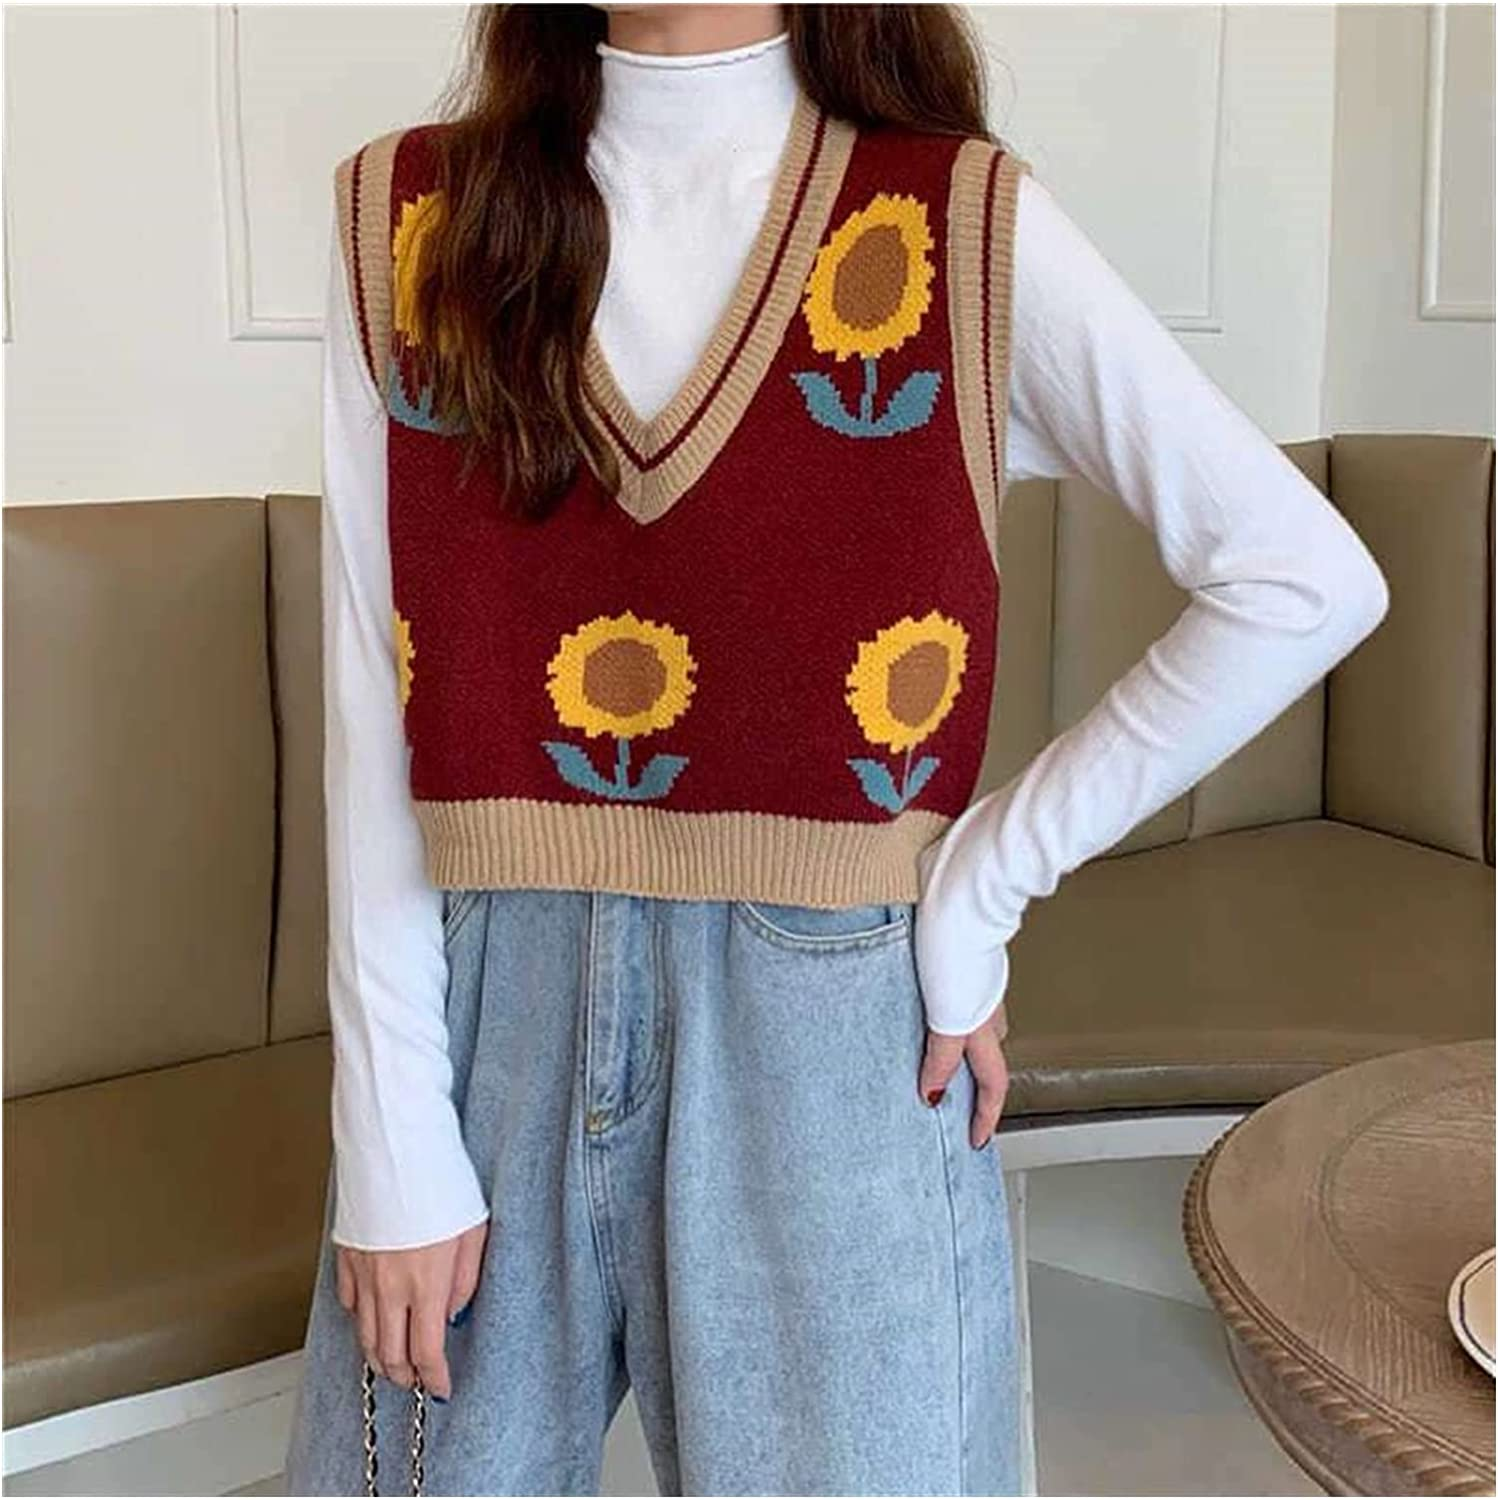 Yuncheng Women's Sunflower Print Knitted Sweater Vest V-Neck Sleeveless Crop Pullover Waistcoat Tops (Color : Red, Size : One Size)